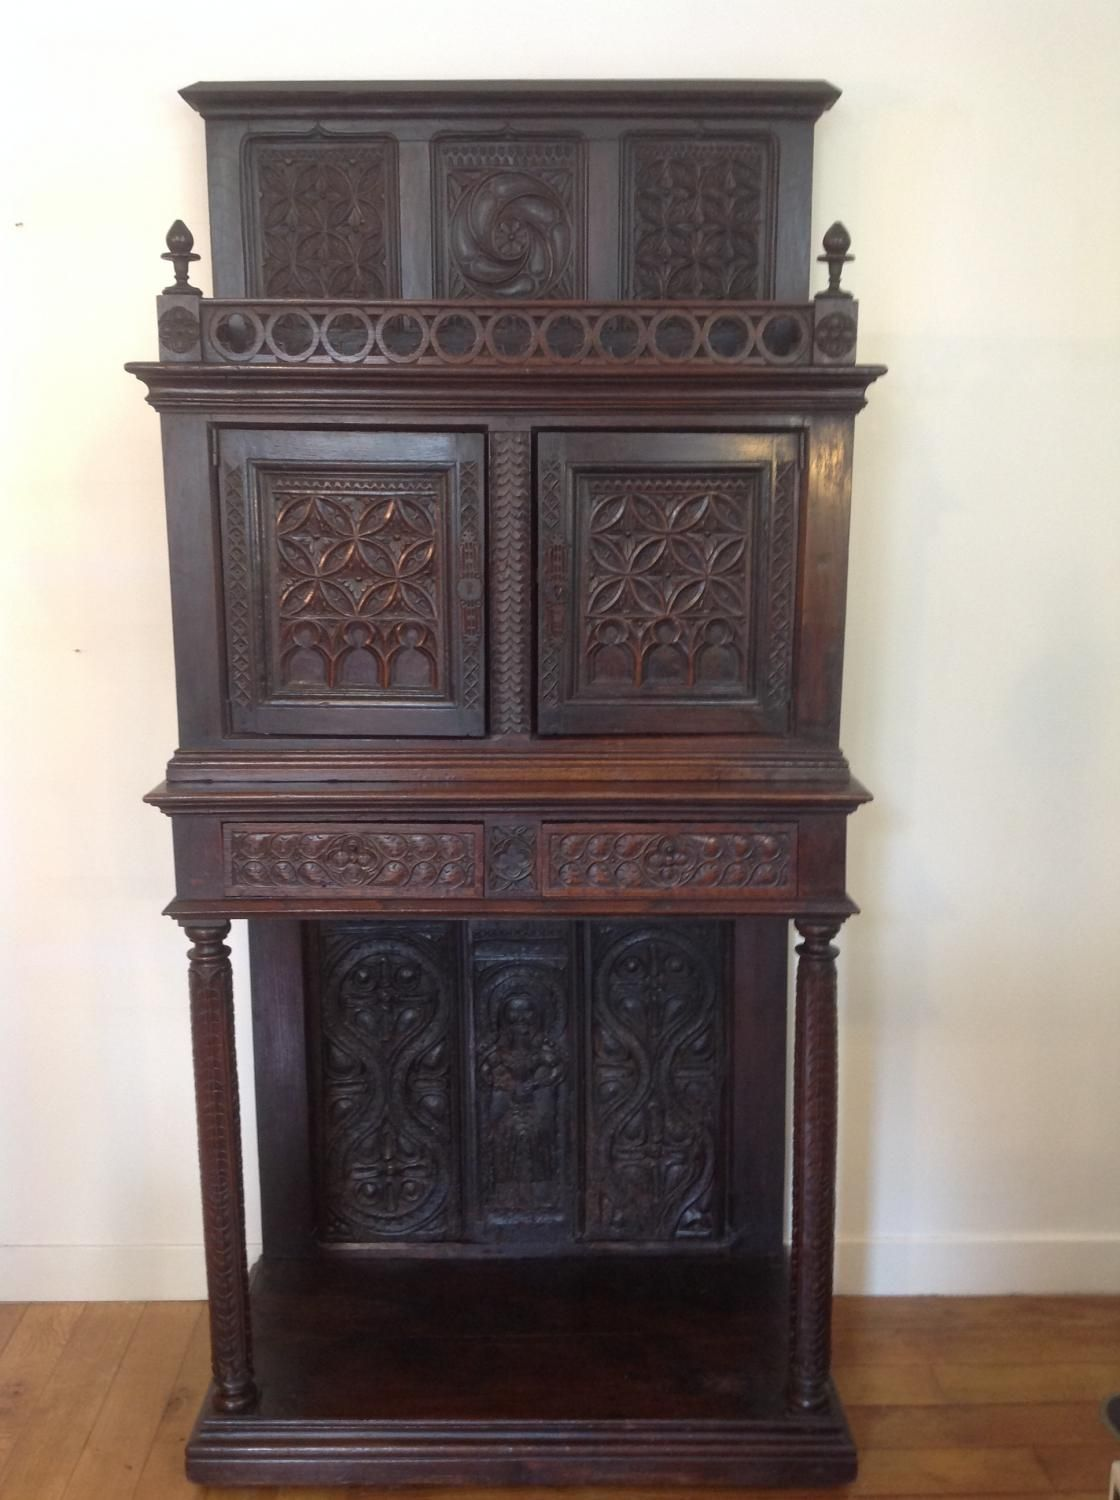 Antique For Sale Gothic Medieval Style Furniture With Back Middle Ages Spirit Dressoir Dresser